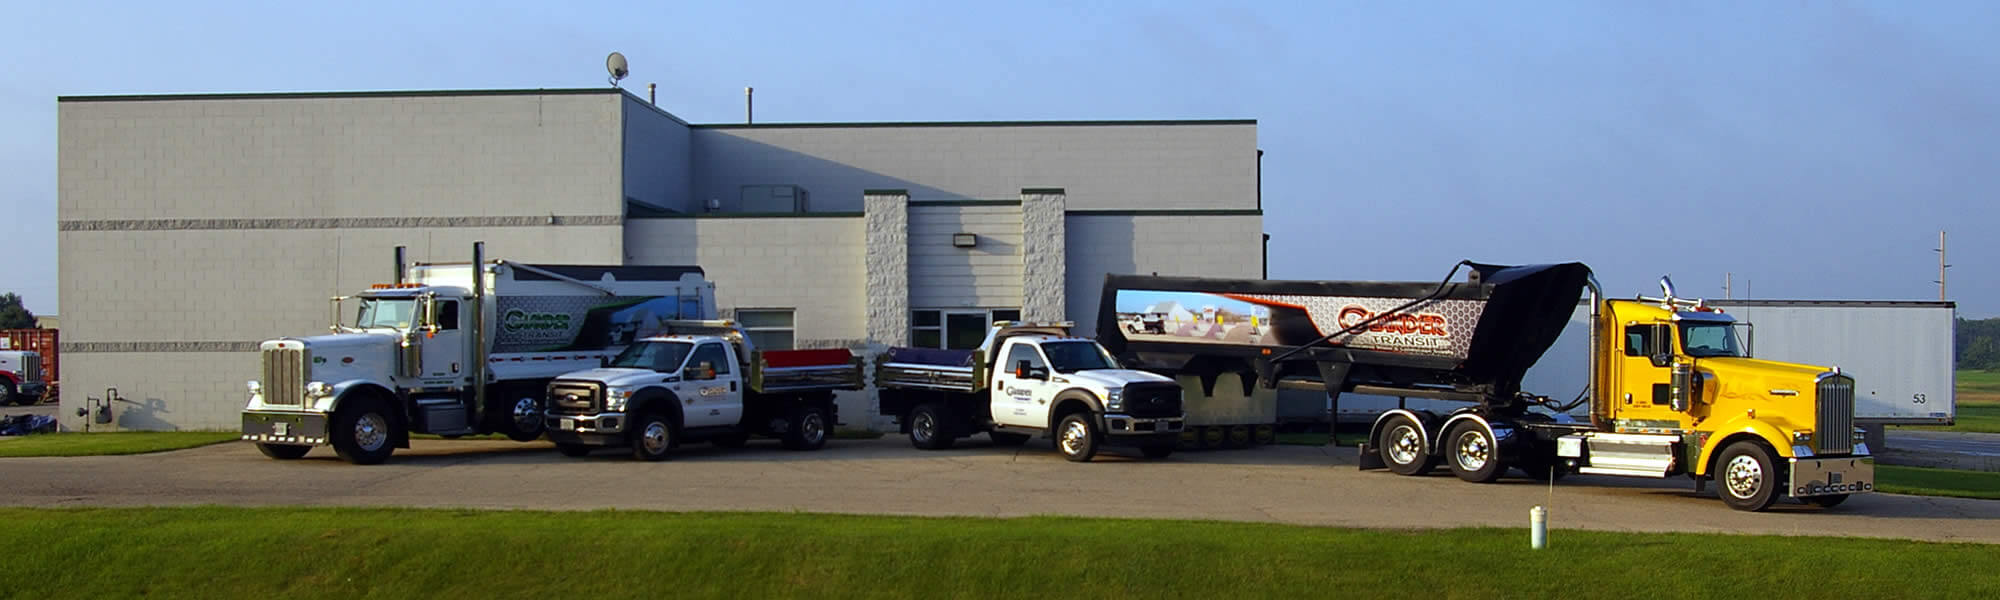 Trucking and Hauling Services in Wisconsin